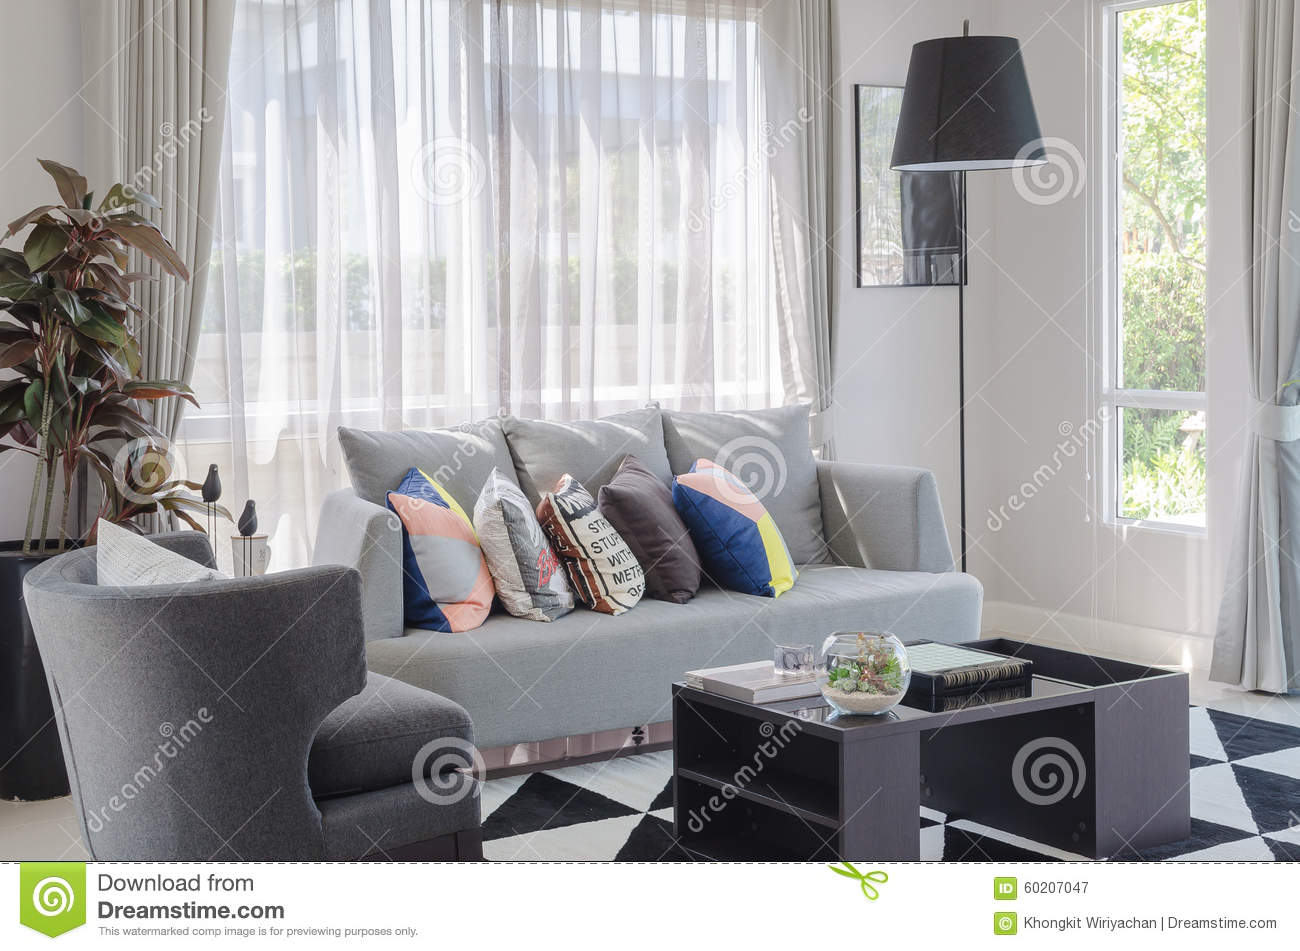 Colorful Pillows On Modern Grey Sofa In Living Room Stock